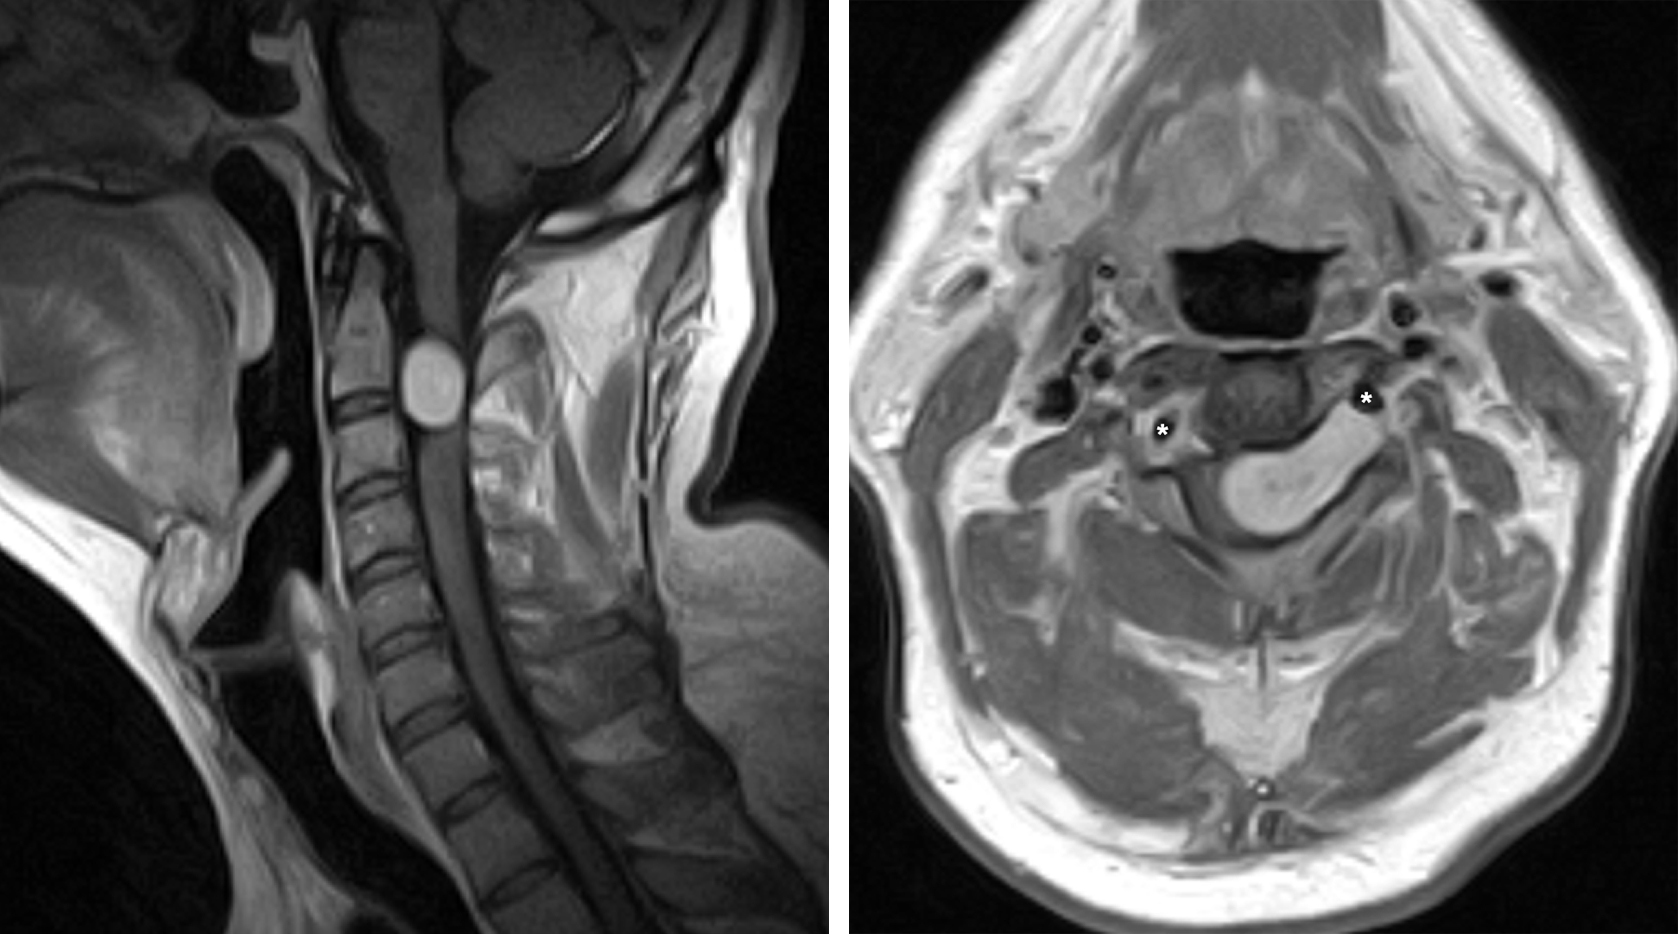 Figure 2: Typical imaging presentation of a cervical dumbbell-shaped schwannoma. Note the anterior displacement of the vertebral artery on the left side (asterisks) and the enlargement of the ipsilateral neuroforamina.